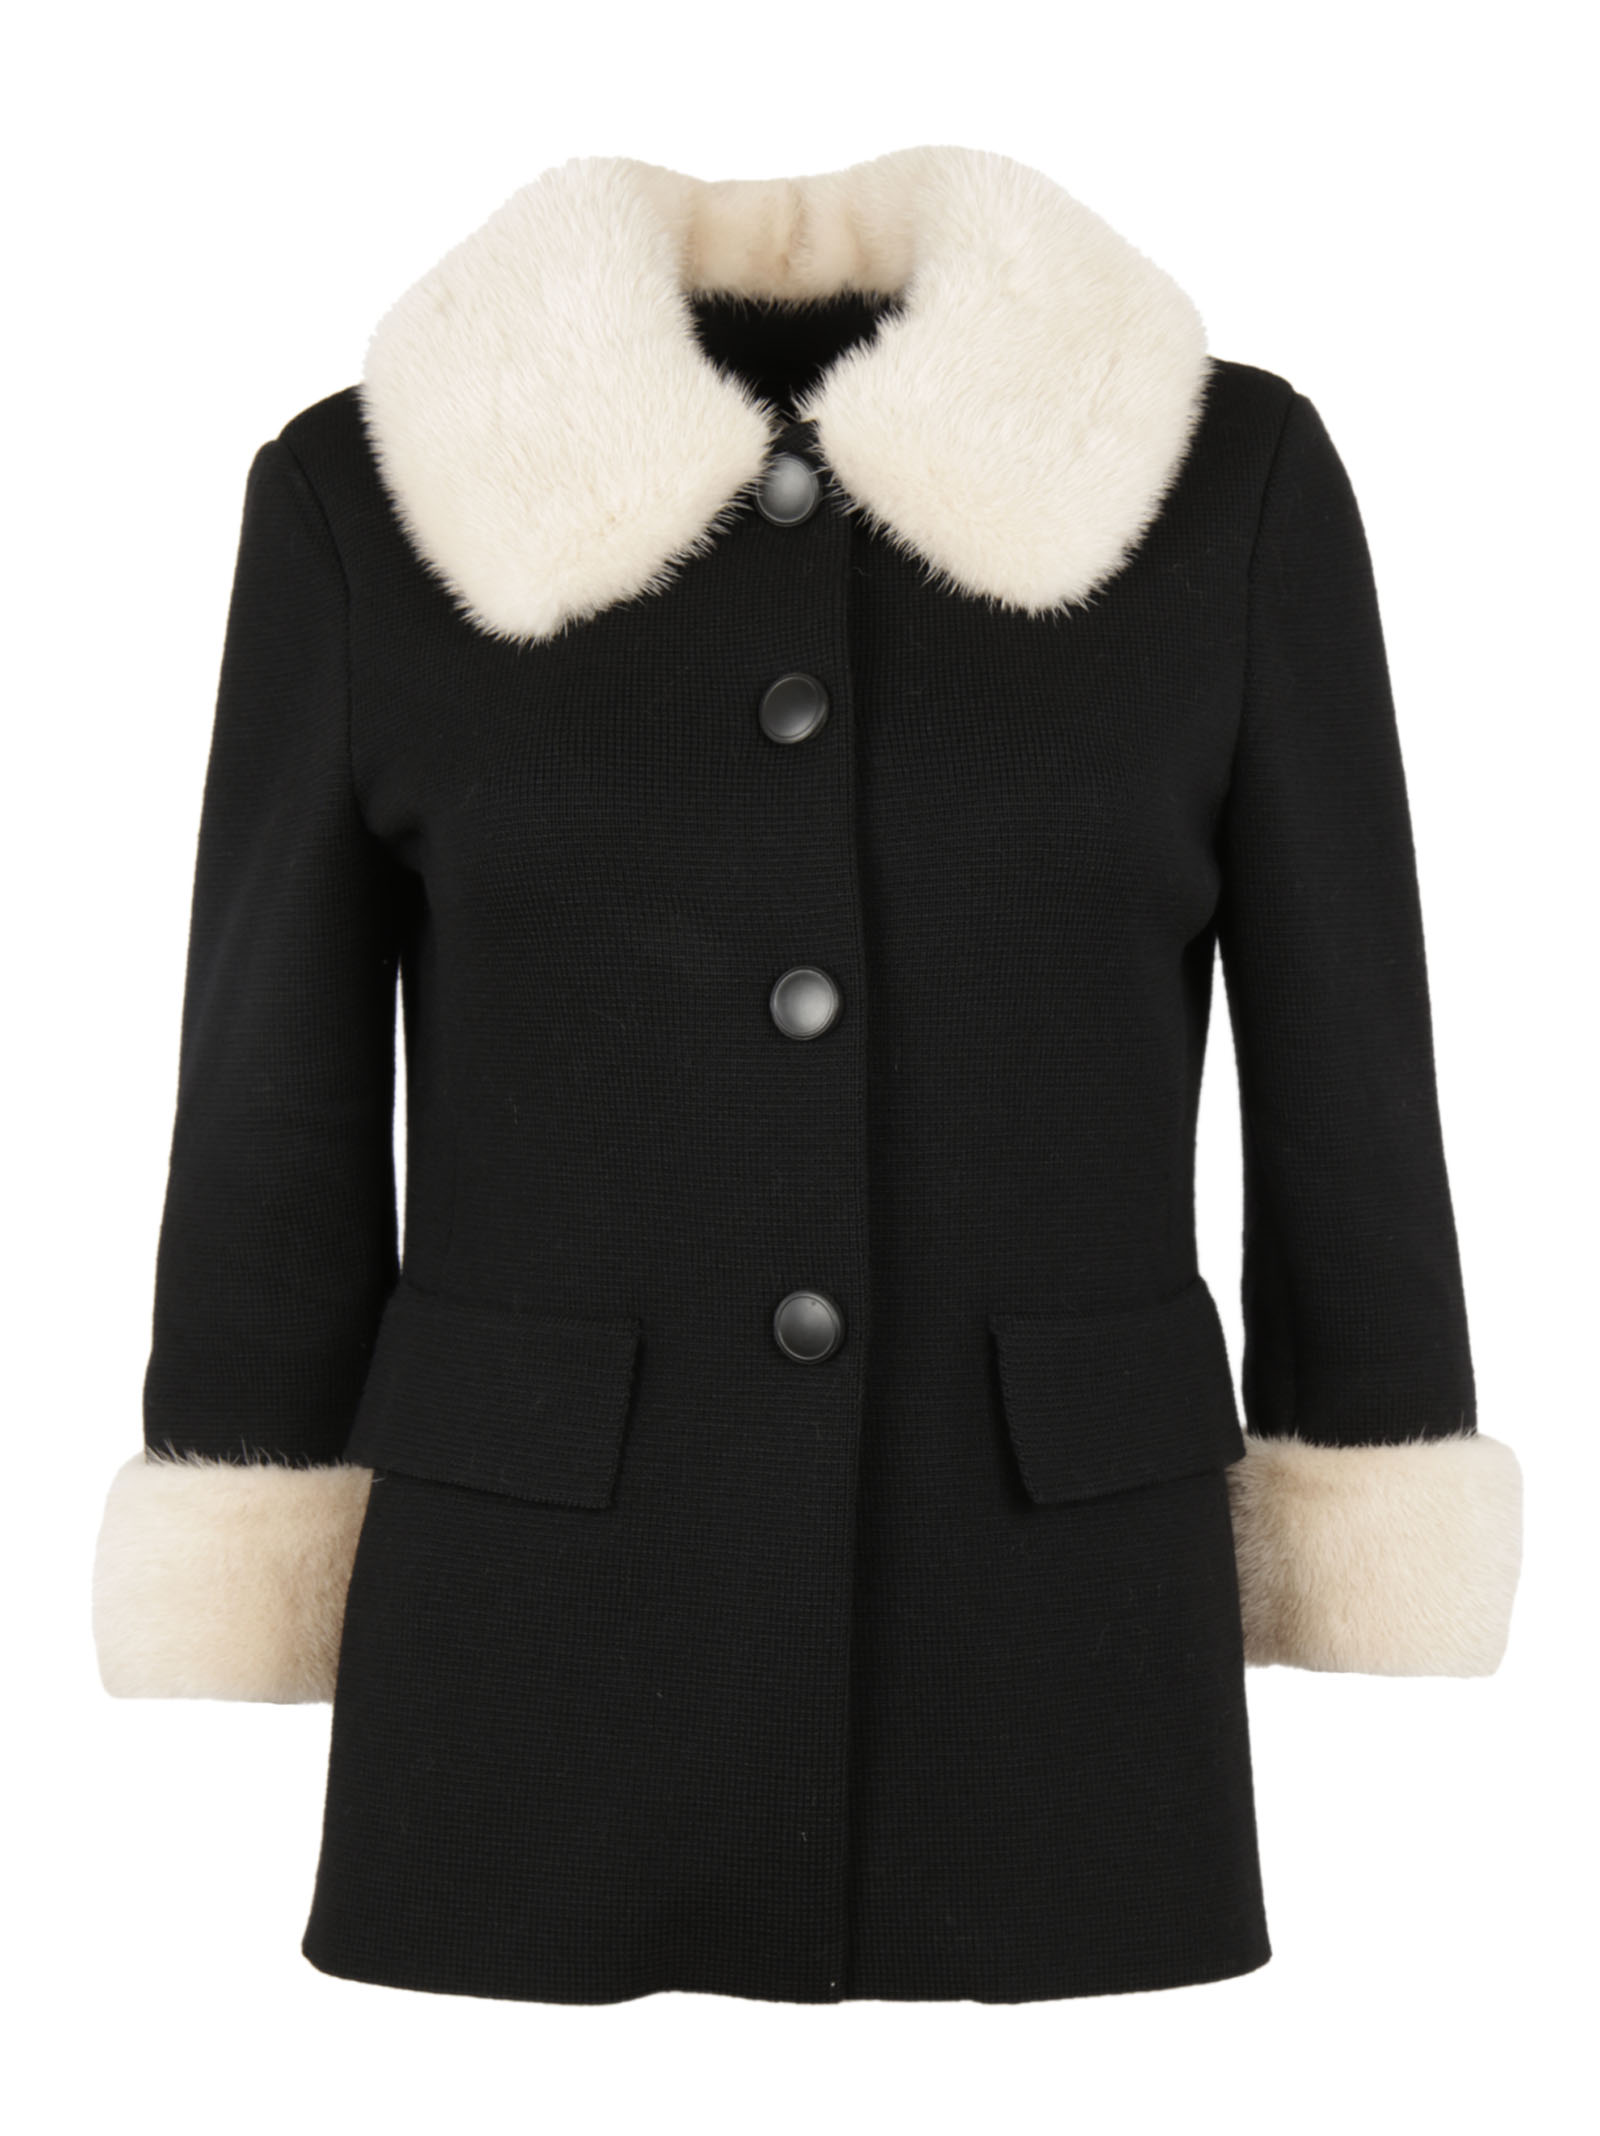 Charlott Charlott Single Breasted Pea Coat